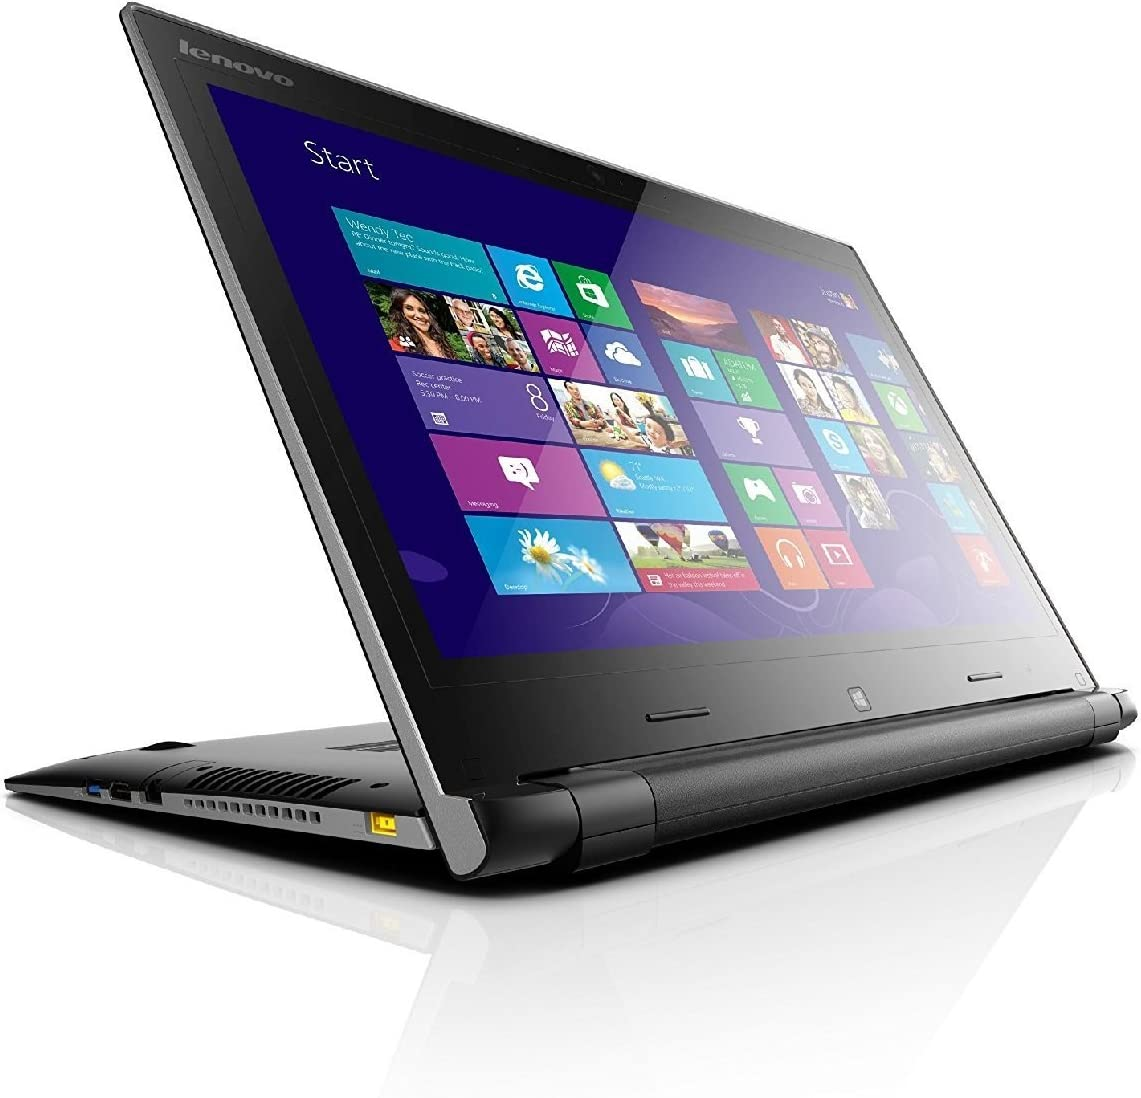 "Lenovo Flex 81EM0008US 14"" Touchscreen 1920 x 1080 Convertible 2-in-1 Laptop Intel Core i5 8th Gen 8250U (1.60 GHz) 8 GB Memory 256 GB PCIe SSD NVIDIA GeForce MX130 Win10 (Renewed)"